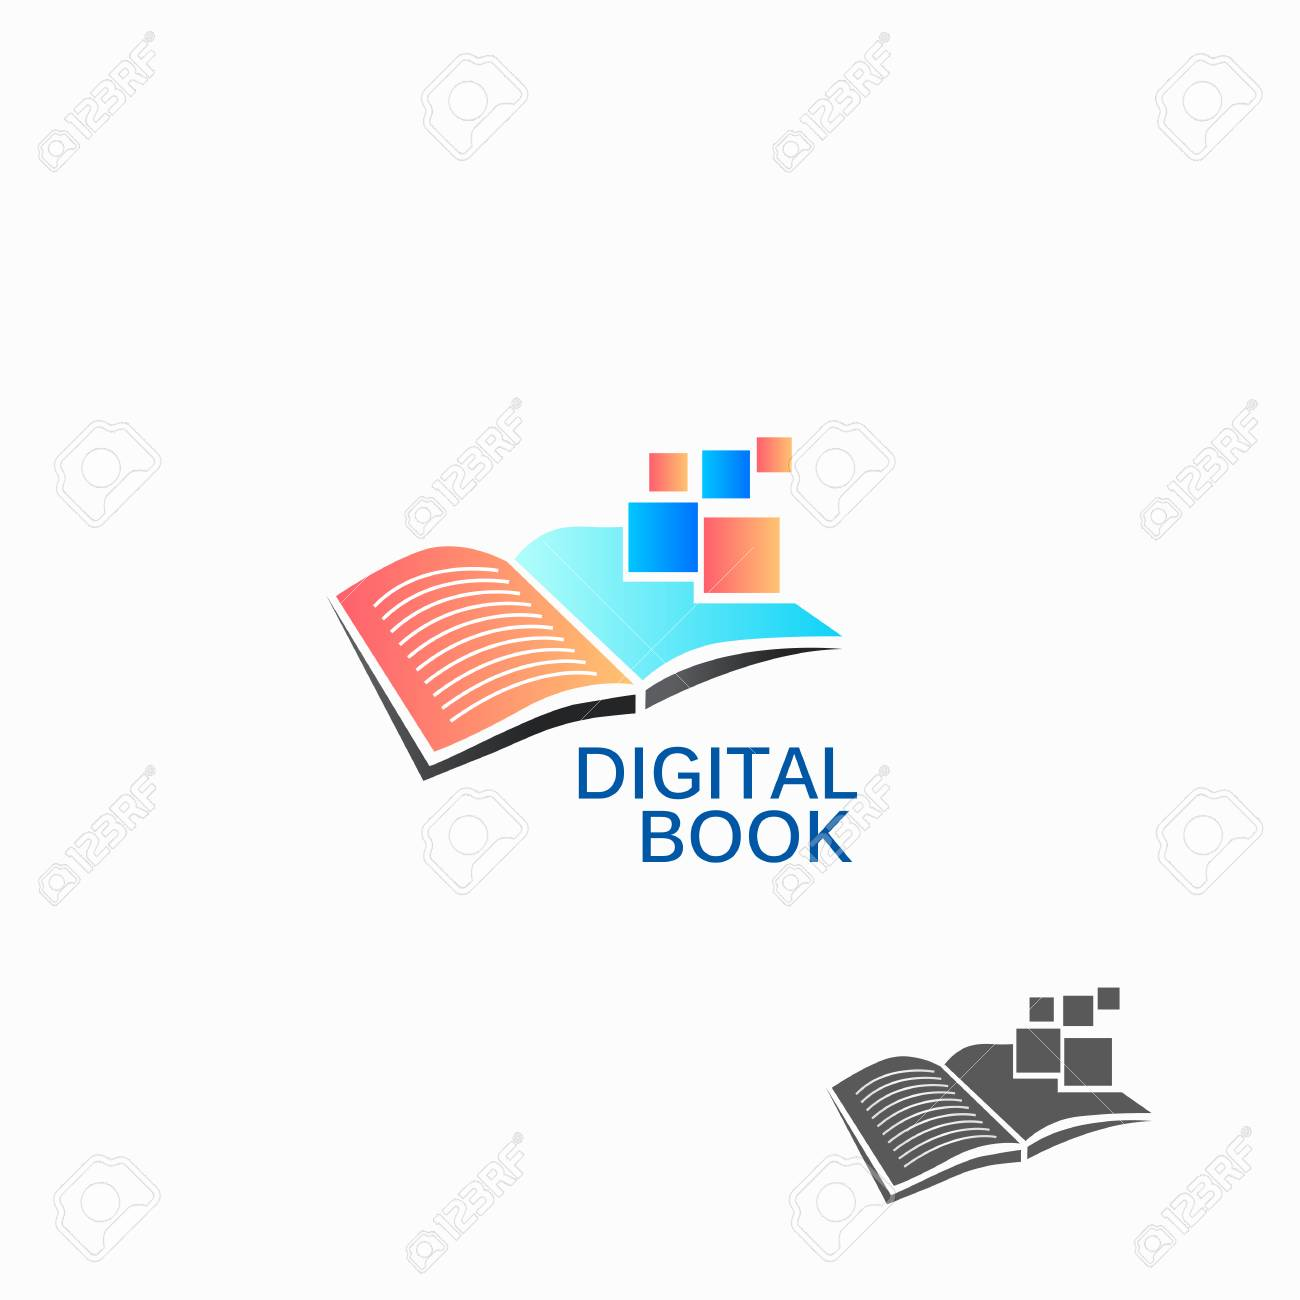 Digital Book Colored Logo